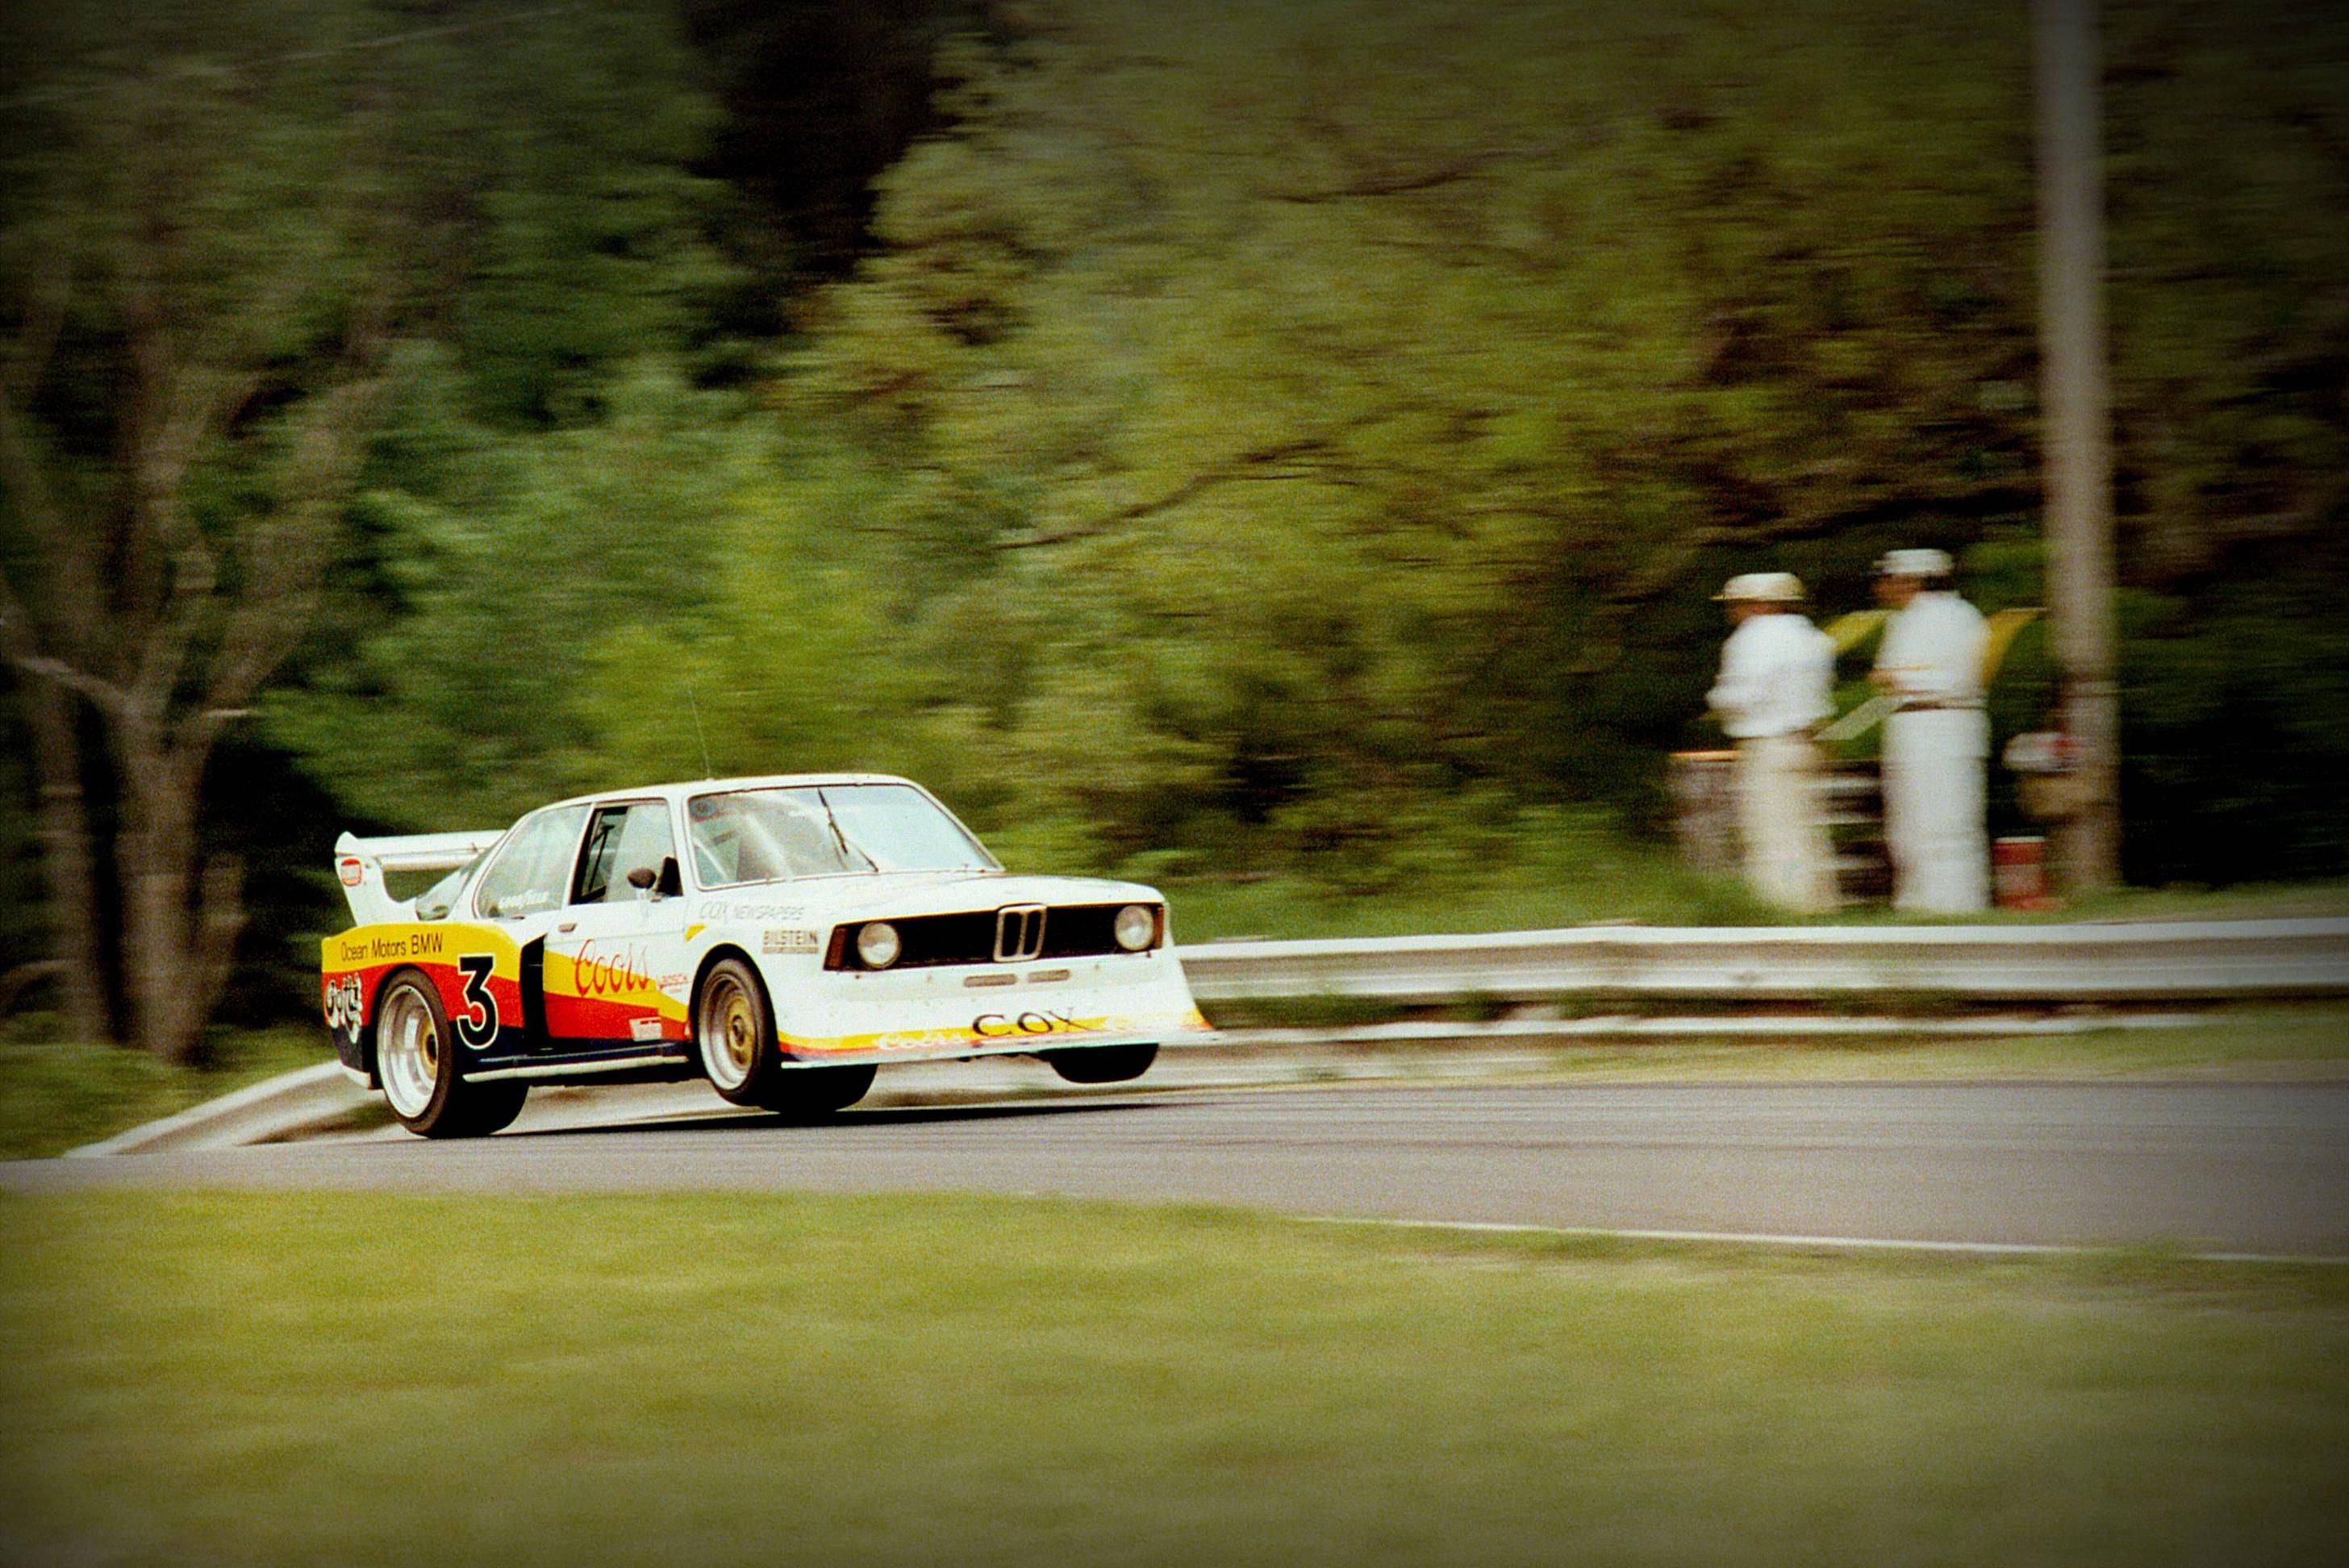 Jim Busby S Bmw Turbo In Action Bmw Cars